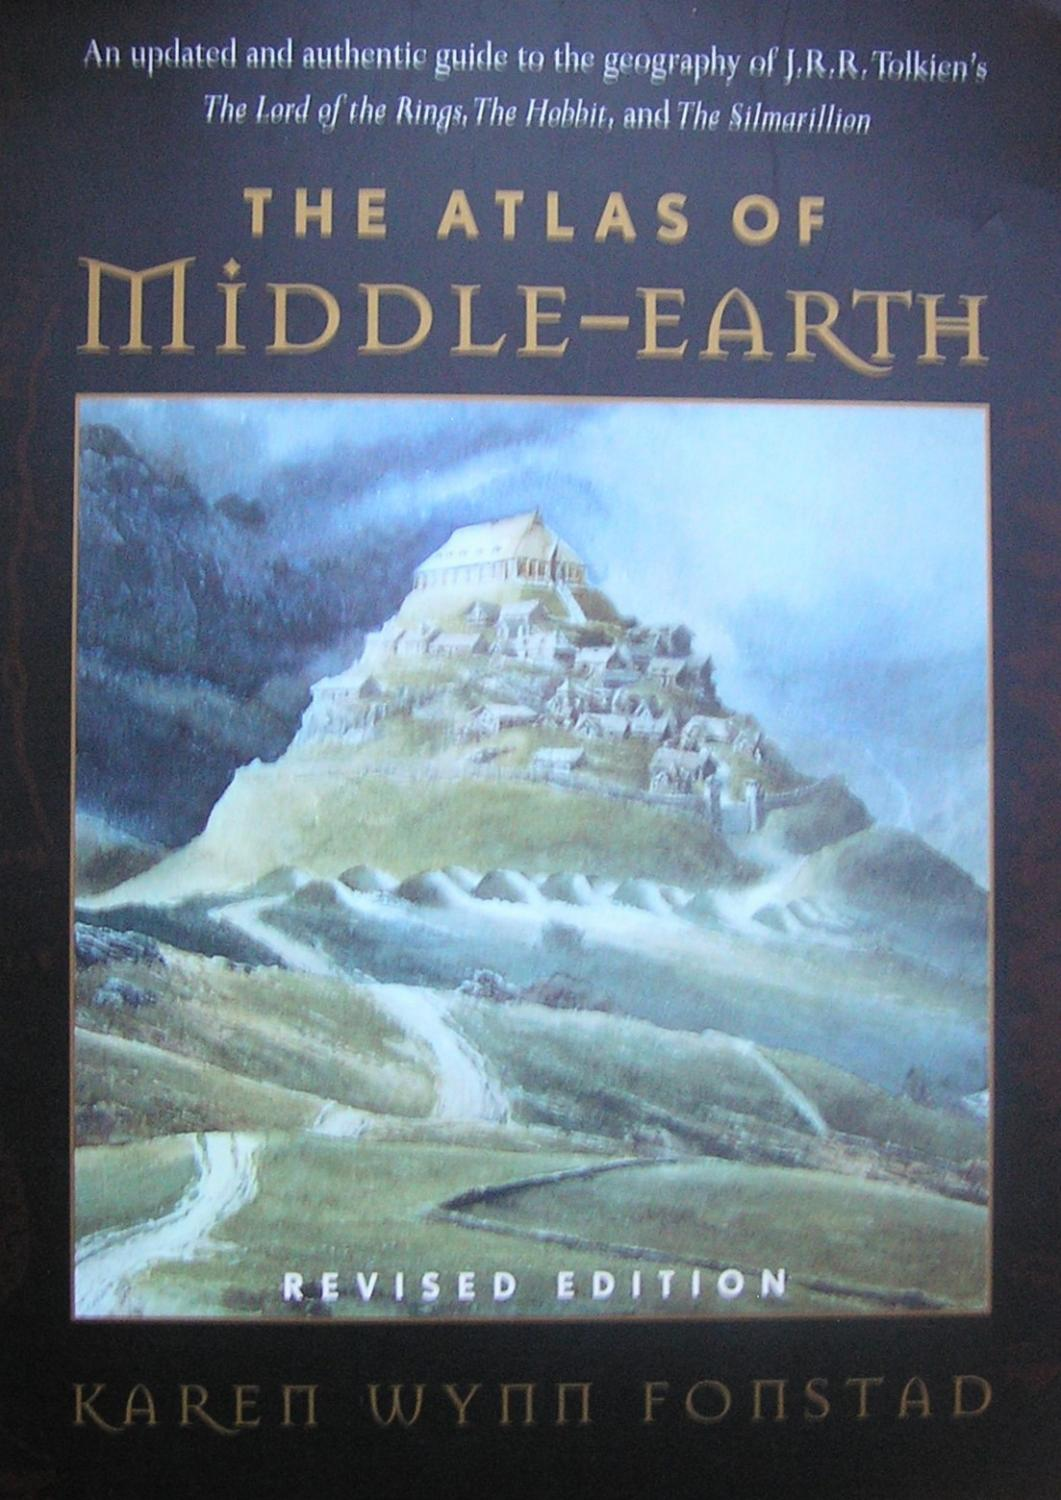 The Atlas of Middle-Earth (Revised Edition) - Fonstad, Karen Wynn